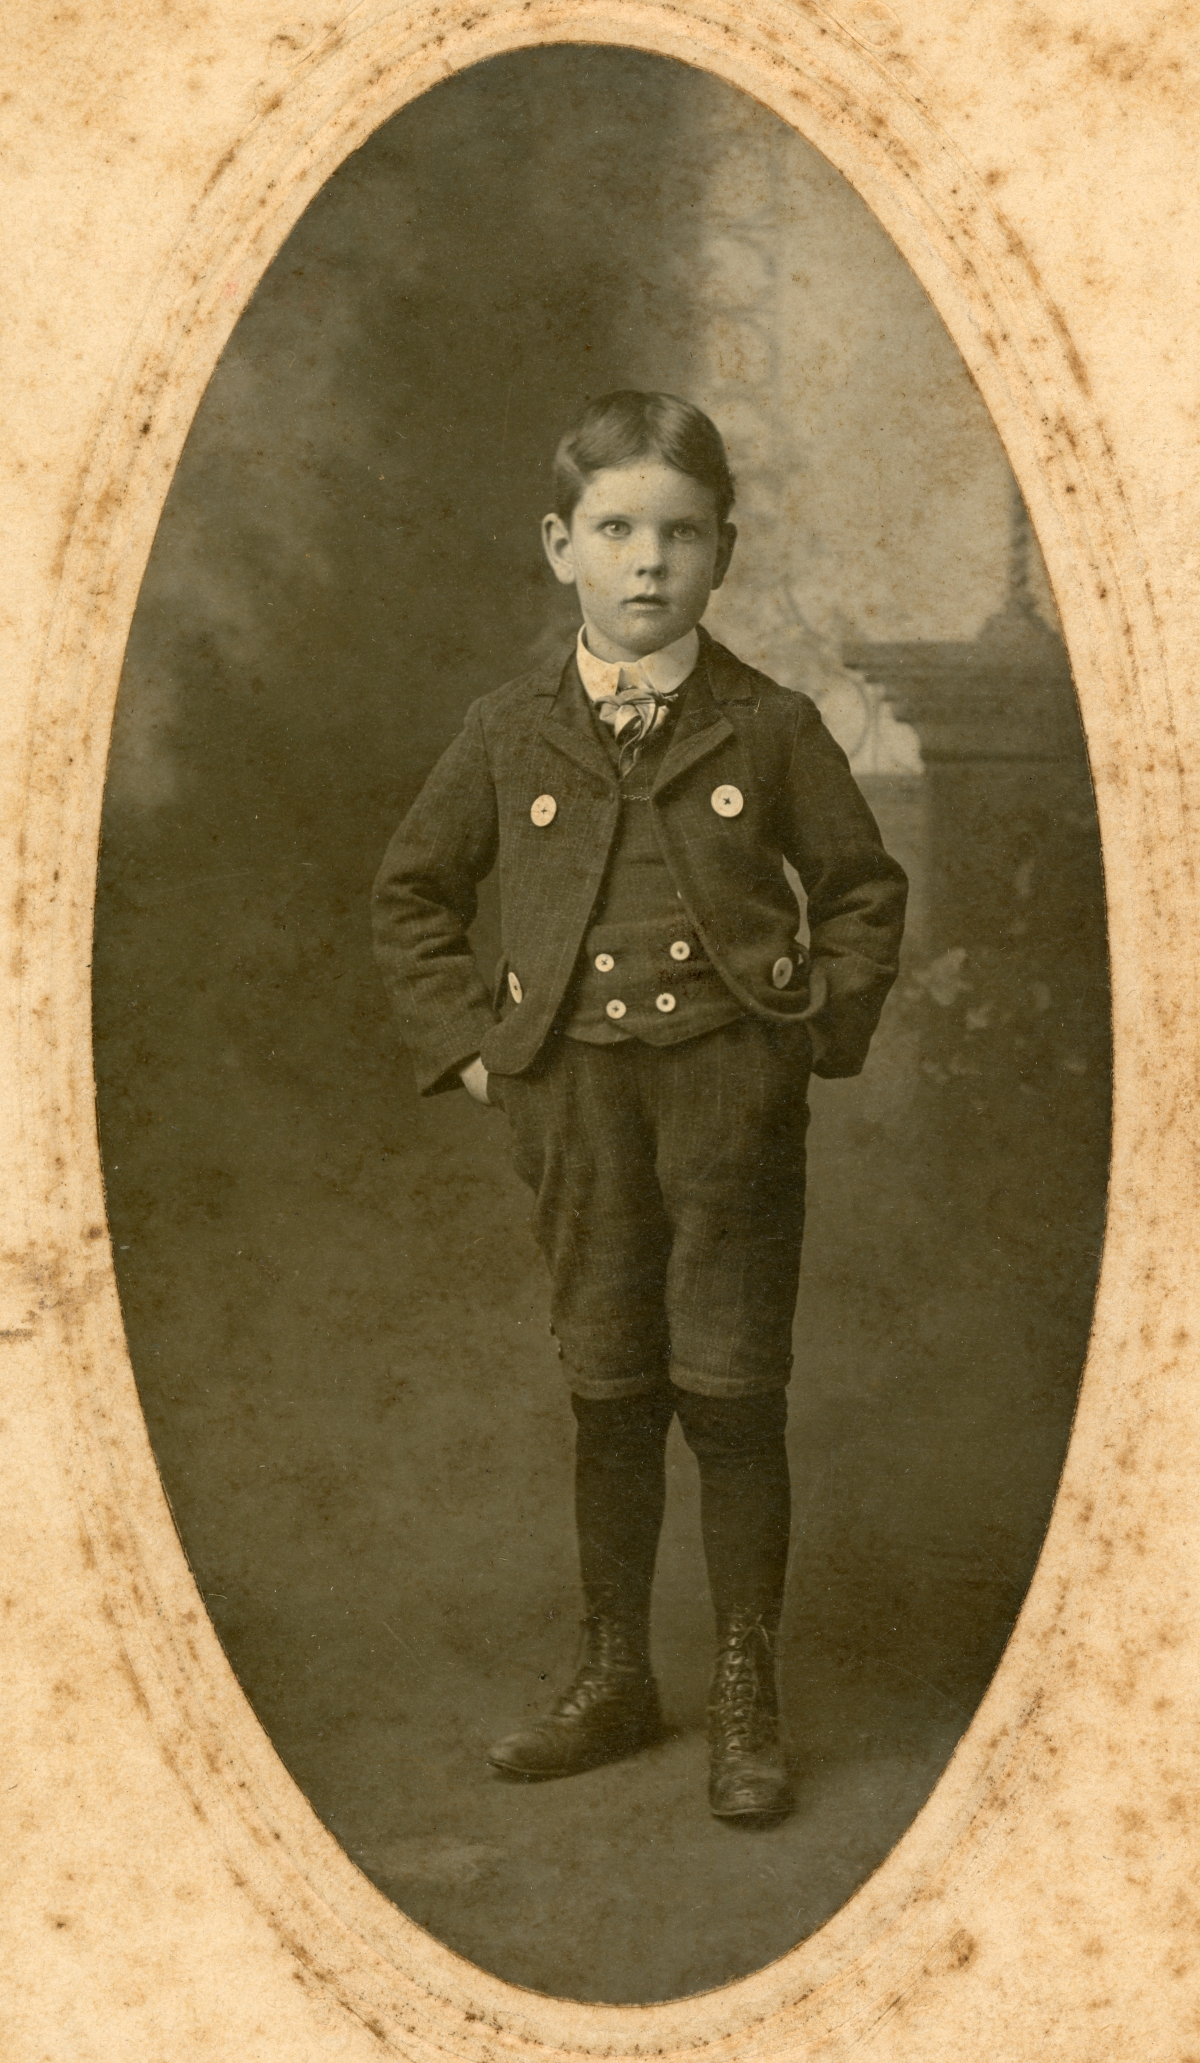 Studio portrait of Henry Sweeting from Bagdad, Florida.